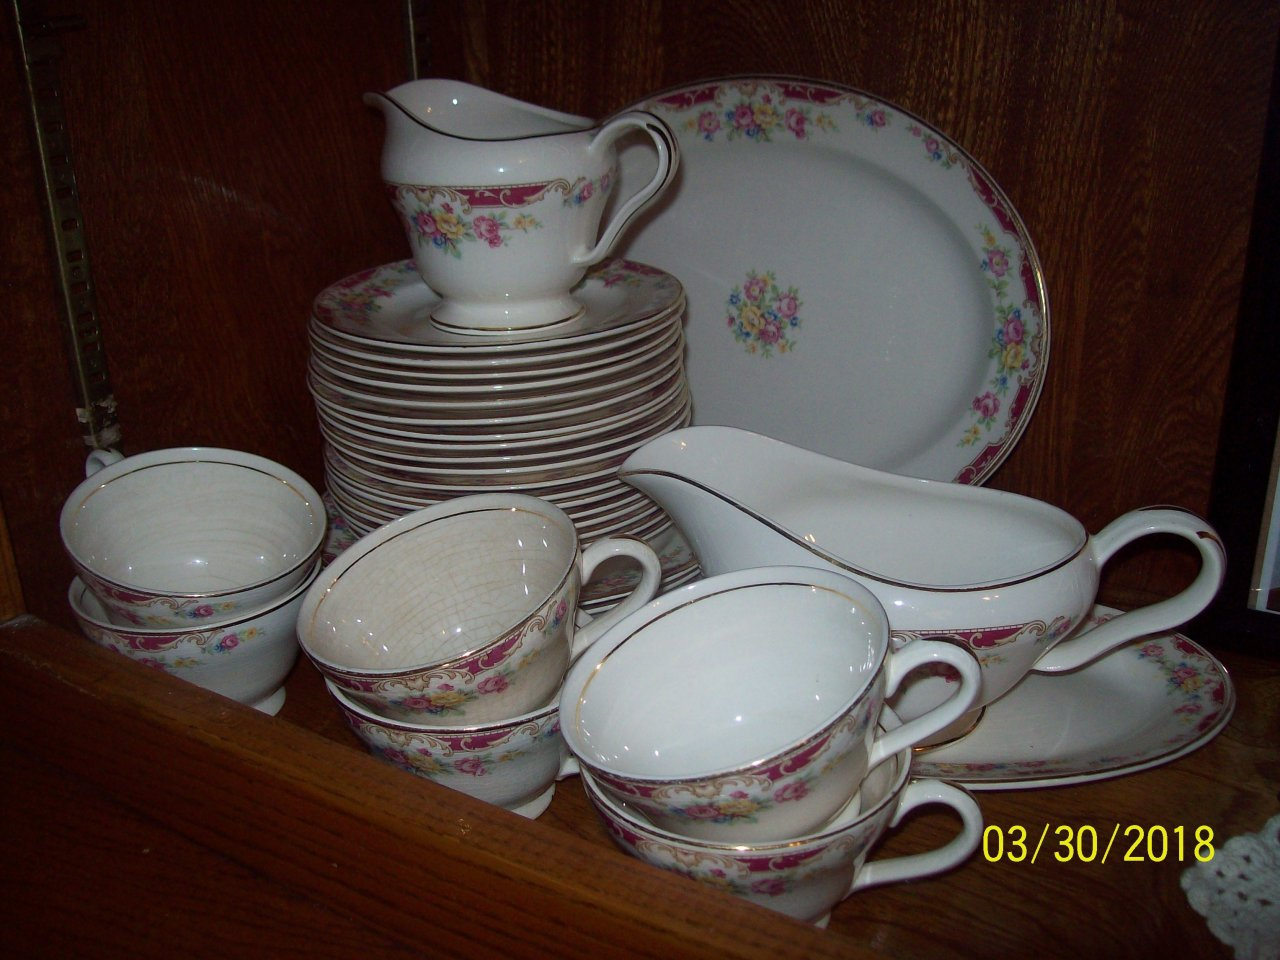 I have a 60 piece china dinnerware set with the number 47-1. Can you tell m... julesdilly 4 months ago & I Have A 60 Piece China Dinnerware Set With The Number 47-1. Can You ...